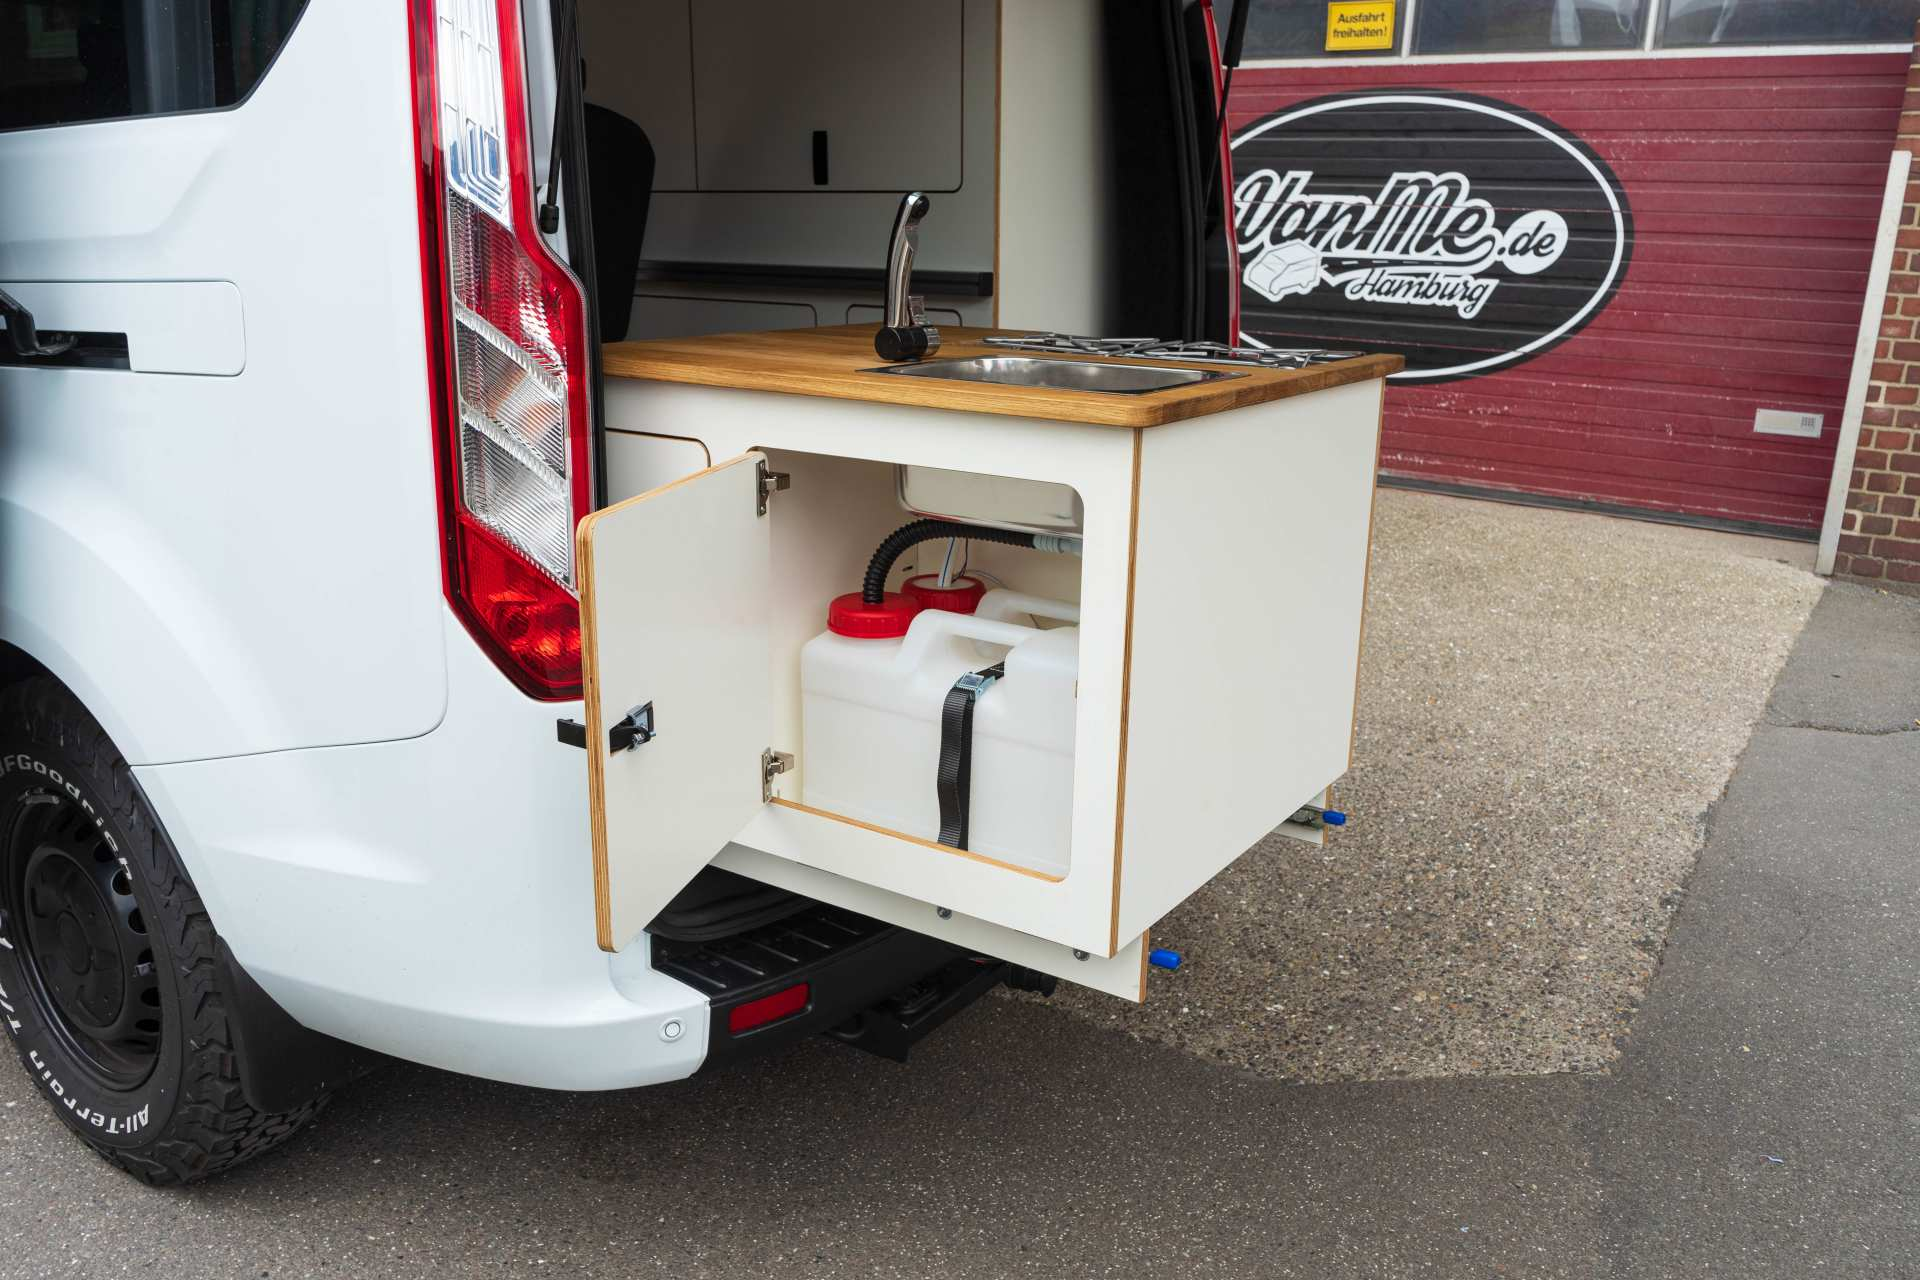 Individualausbau: EXPEDITION Ford Transit Custom, langer Radstand - 9